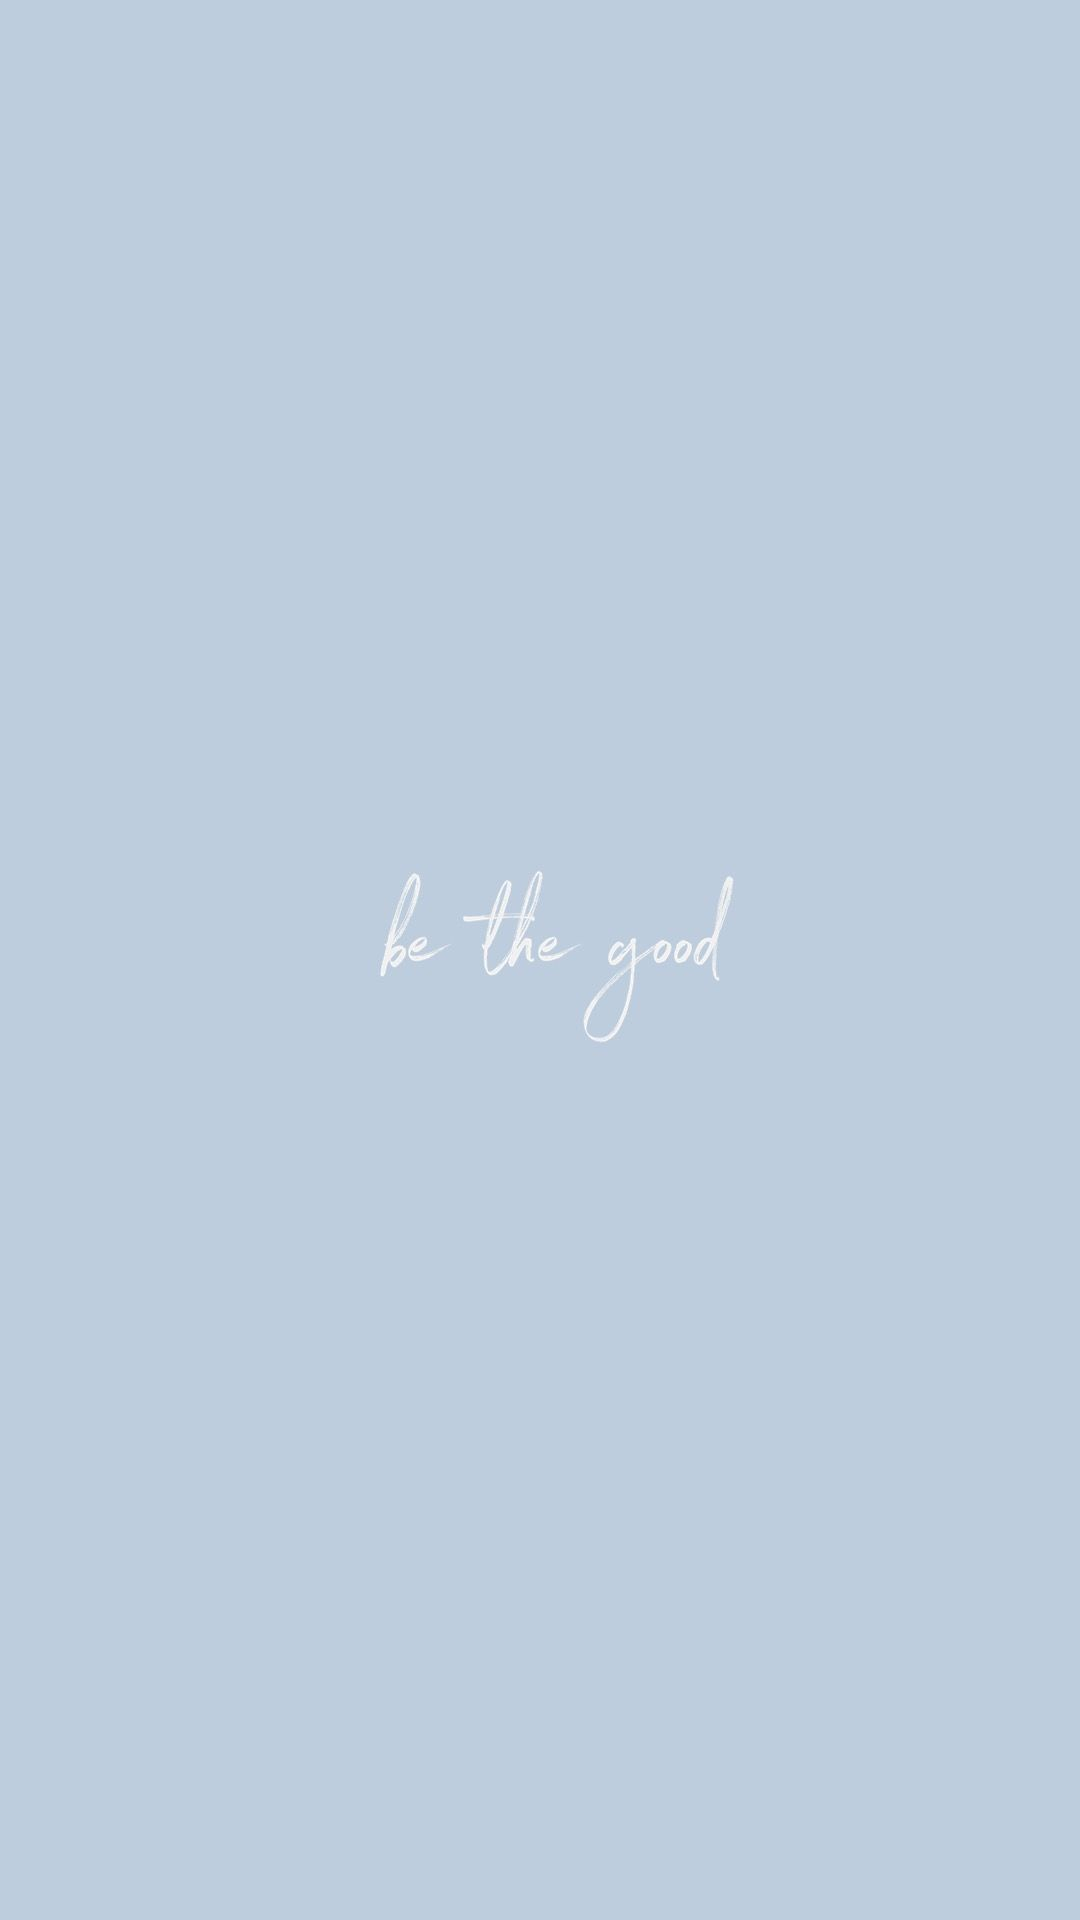 Free Iphone Wallpaper Be Good Quote Aesthetic Blue Quotes Baby Blue Quotes